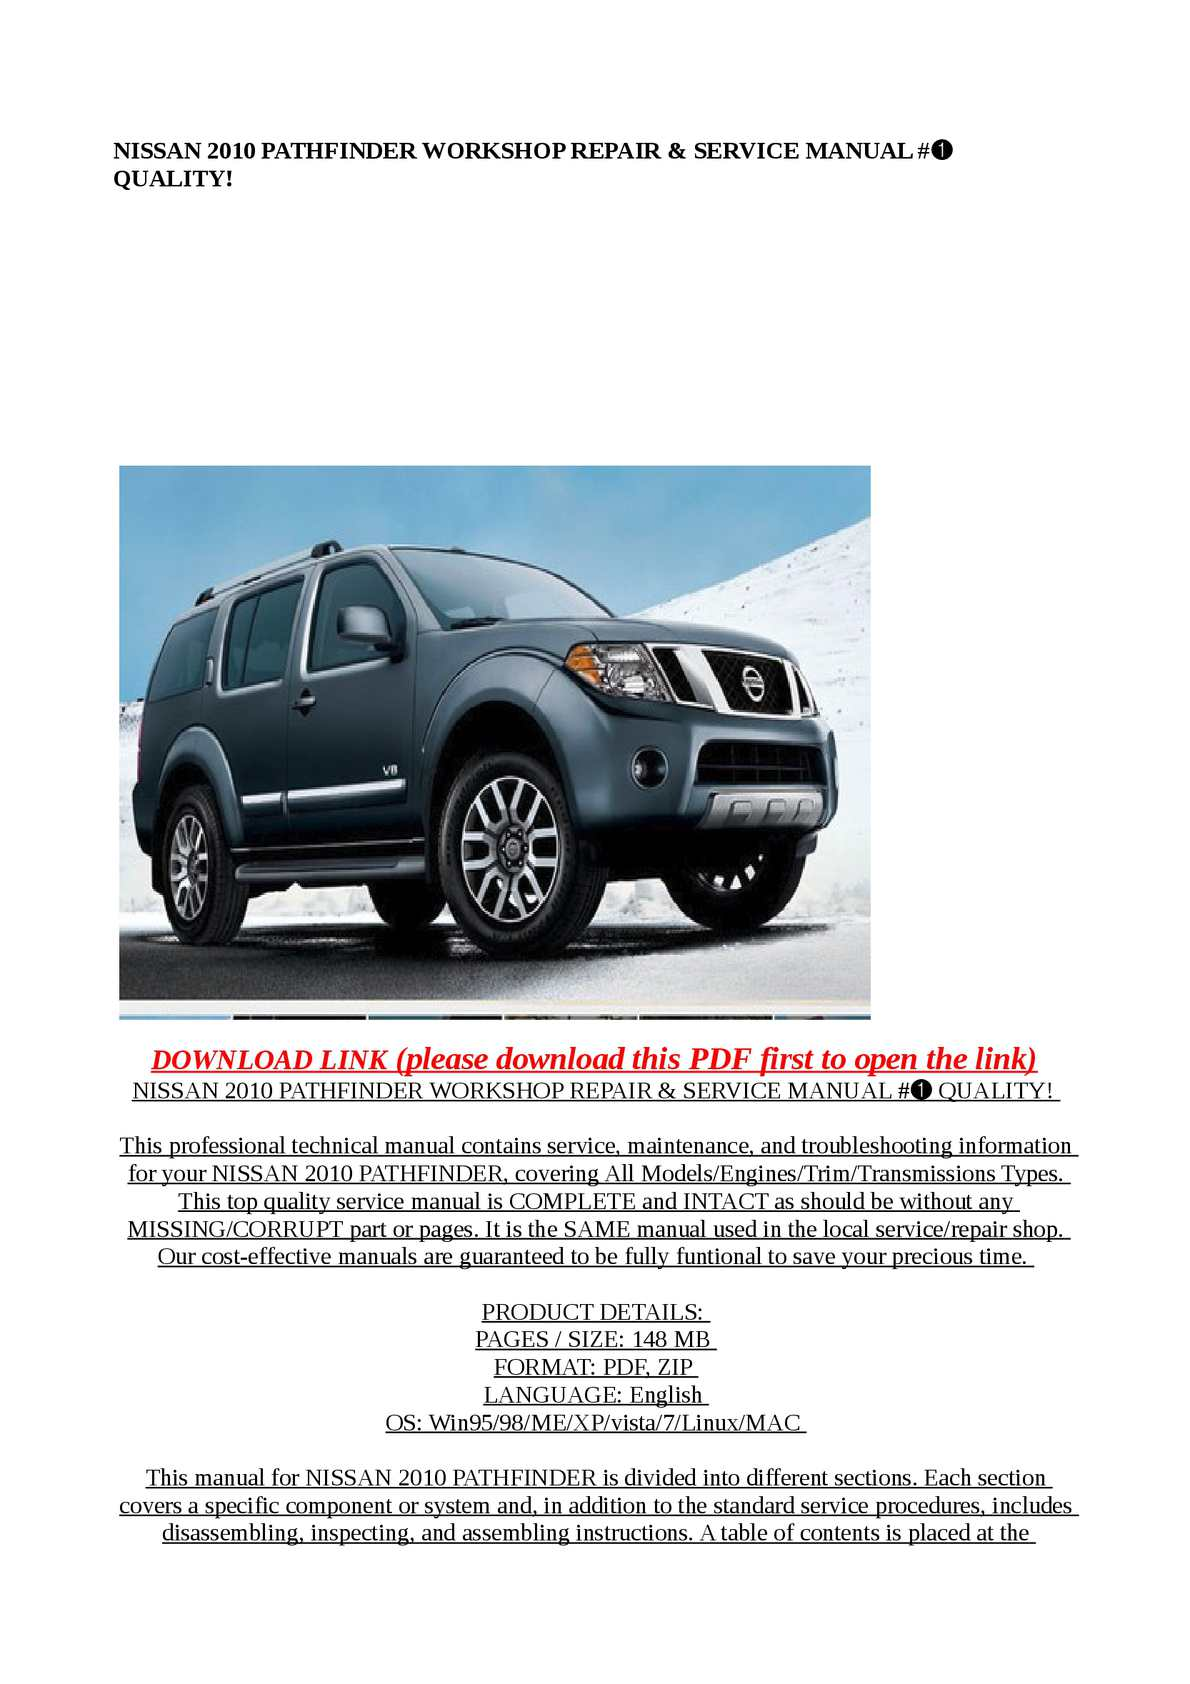 2011 Nissan Pathfinder Maintenance Manual Recomended Car 2010 Wiring Diagram Service Good Owner Guide Website